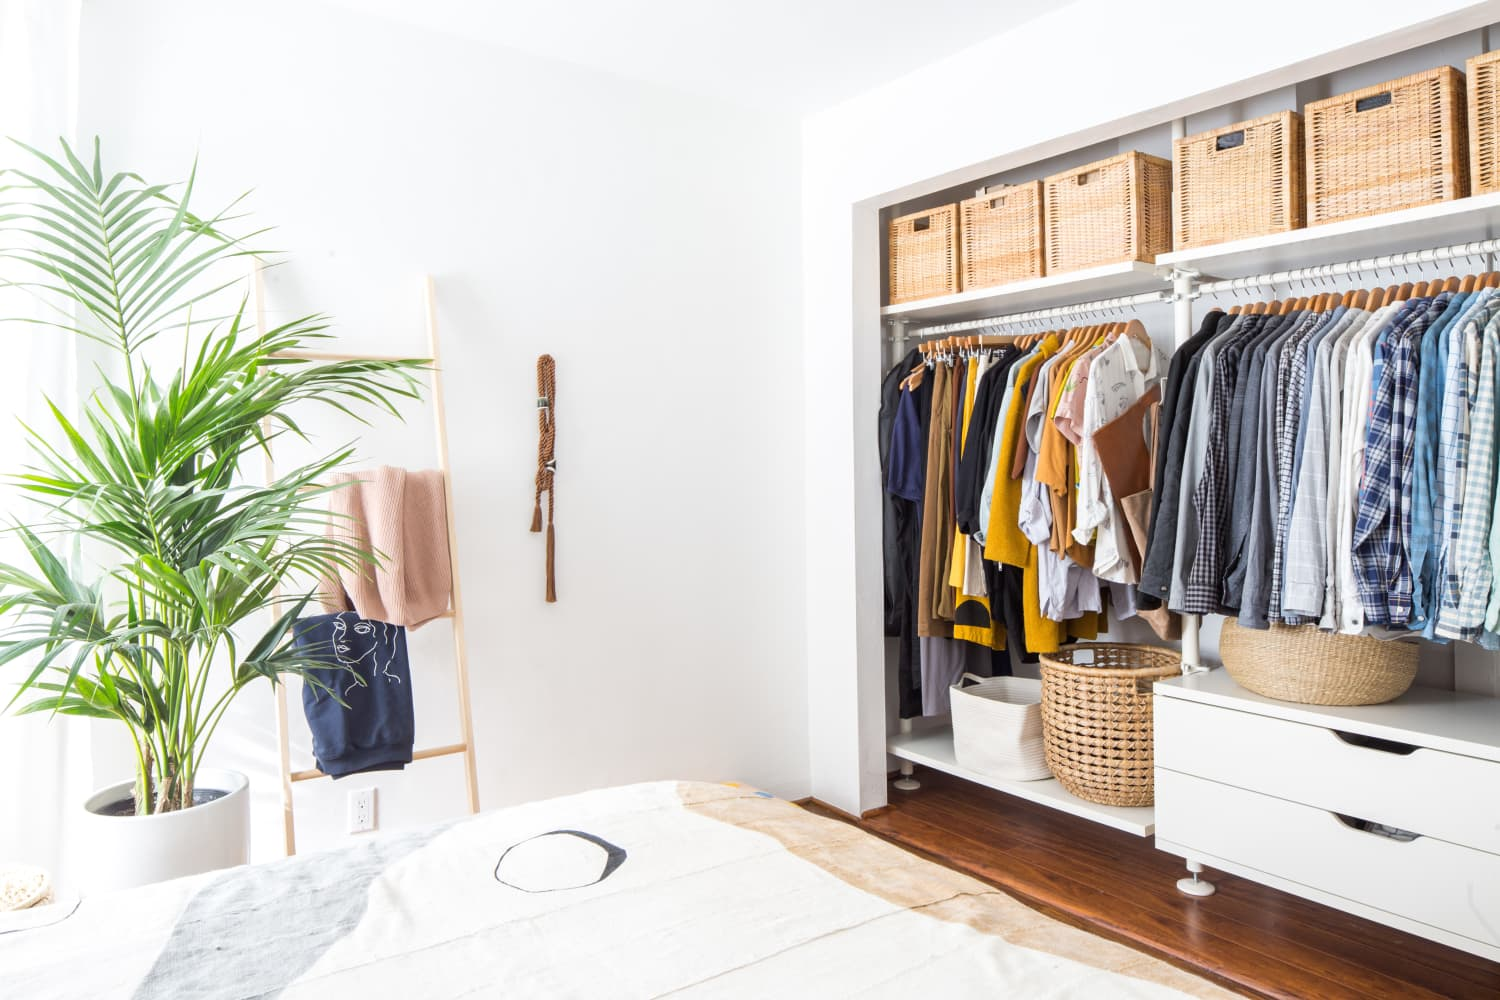 The 7 Best Closet Systems You Can Easily Install Yourself